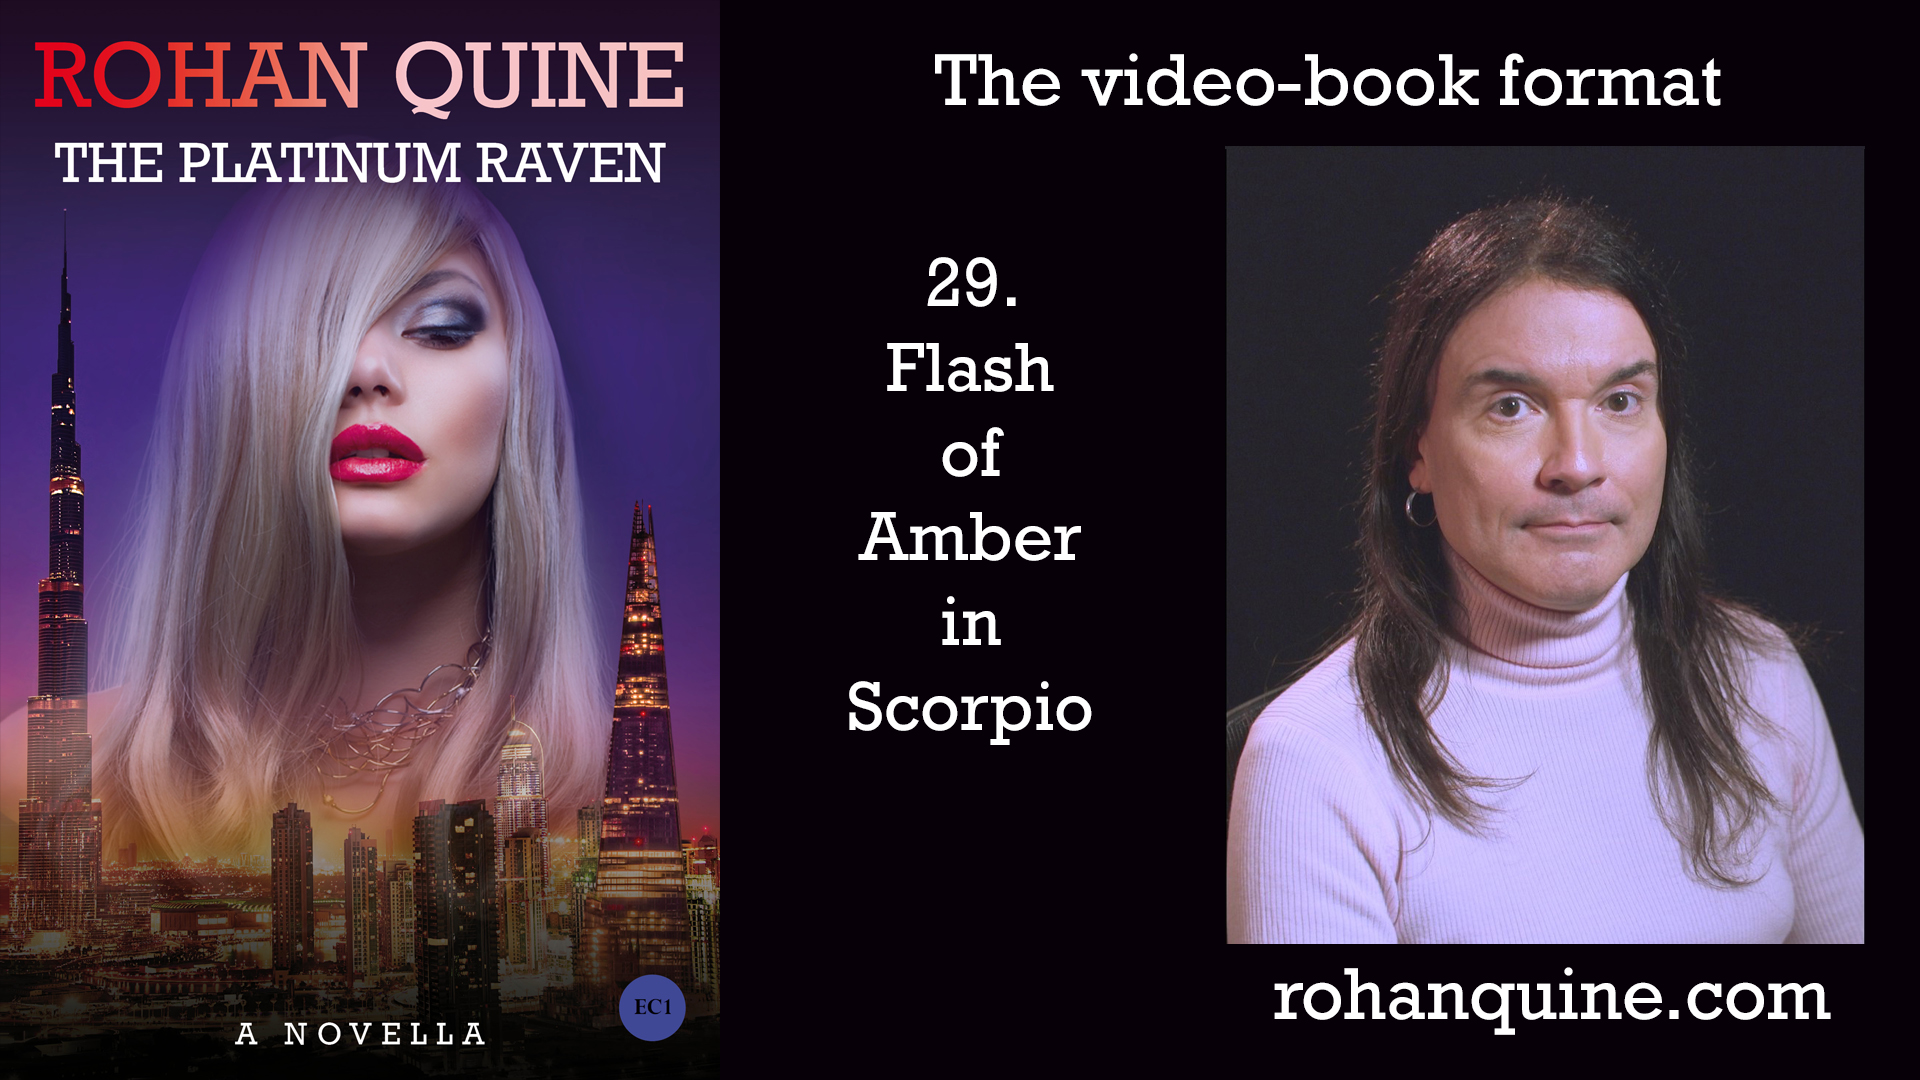 THE PLATINUM RAVEN by Rohan Quine - video-book format - chapter 29